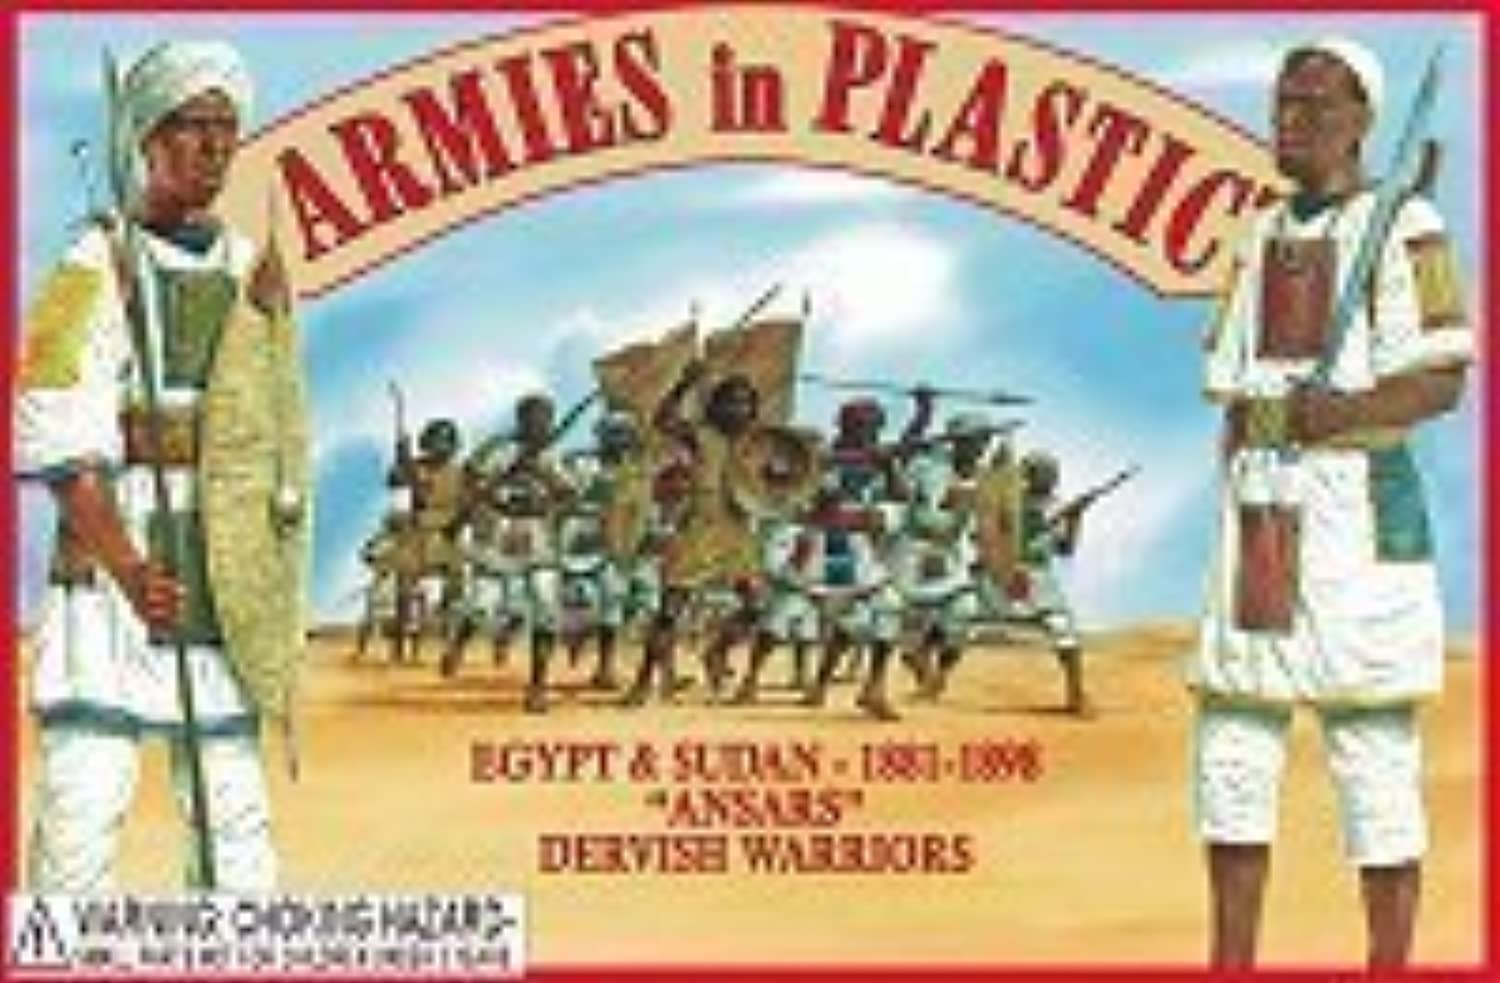 Egypt & Sudan 1881-1898 Ansars Dervish Warriors (20) 1 32 Armies in Plastic by Armies in Plastic